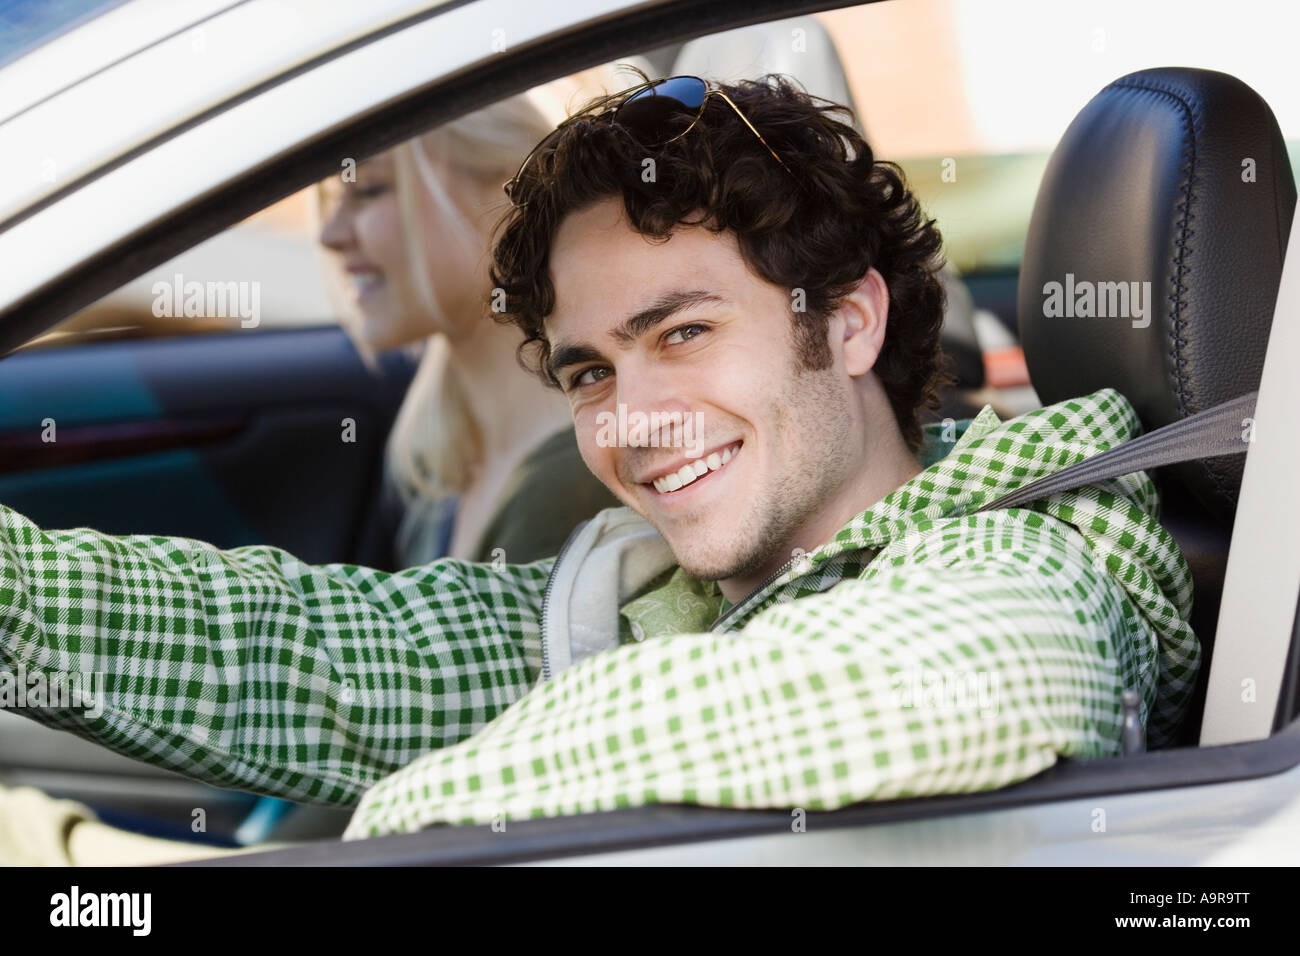 Man sitting in driver s side of car - Stock Image